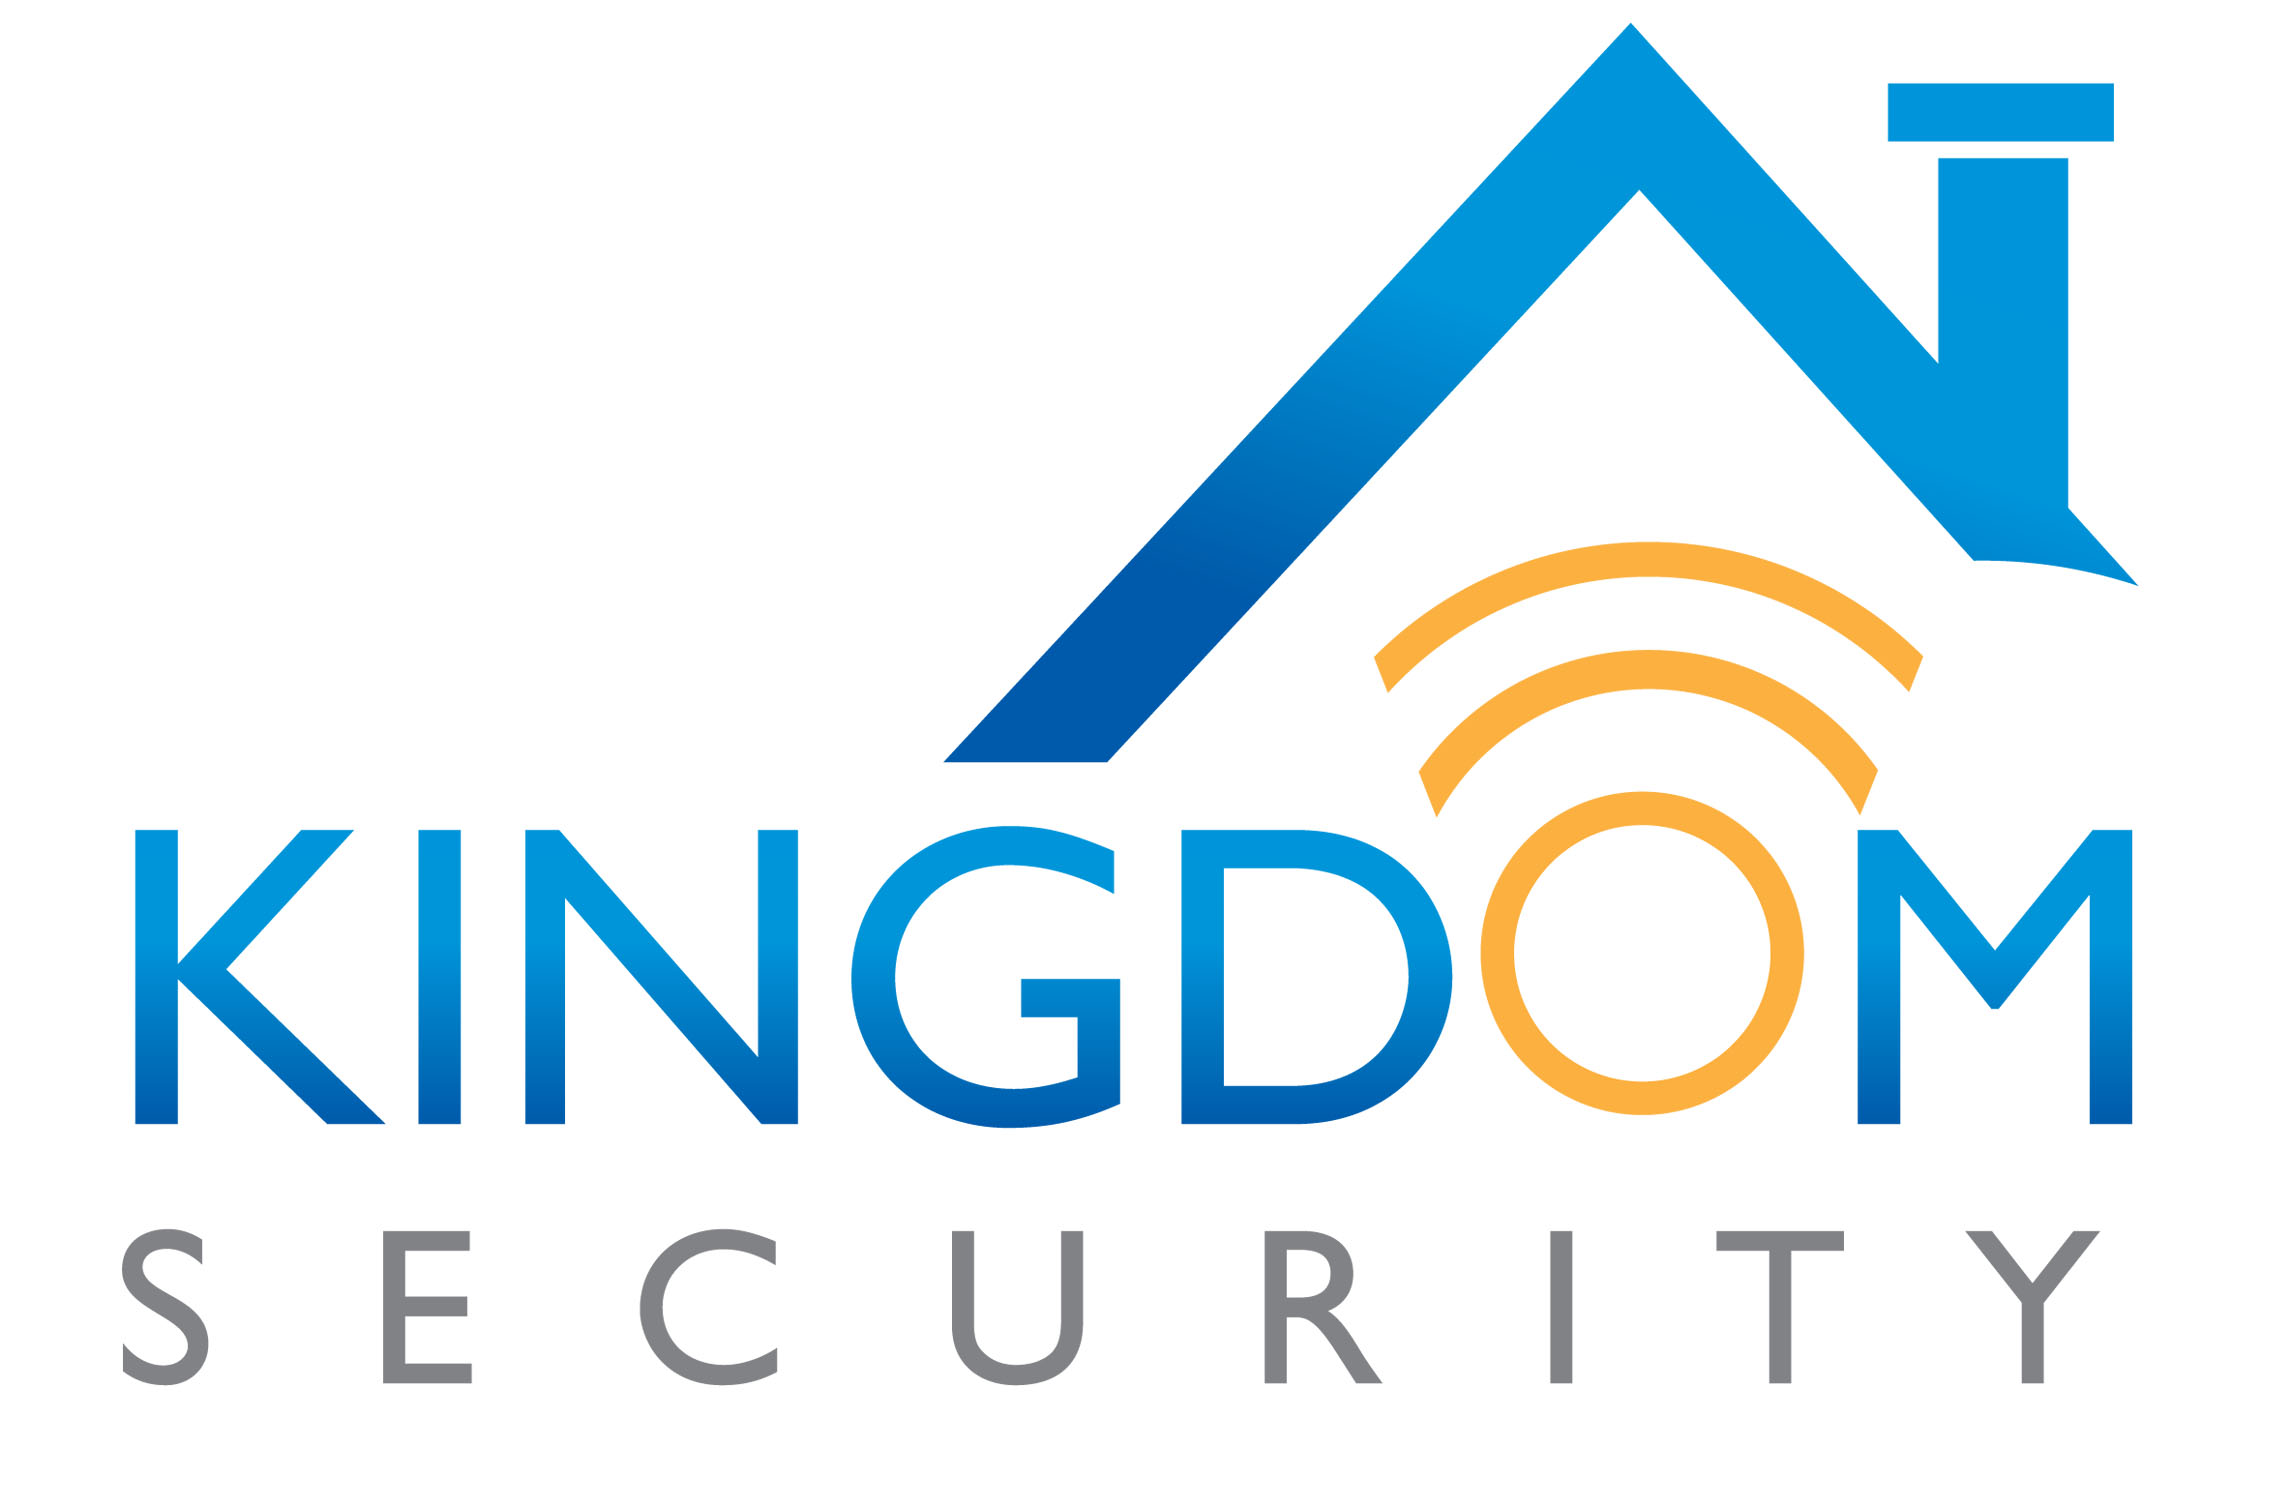 Kingdom Security for all your Security needs in Kerry for CCTV Intruder Alarms gate automation and maintenance